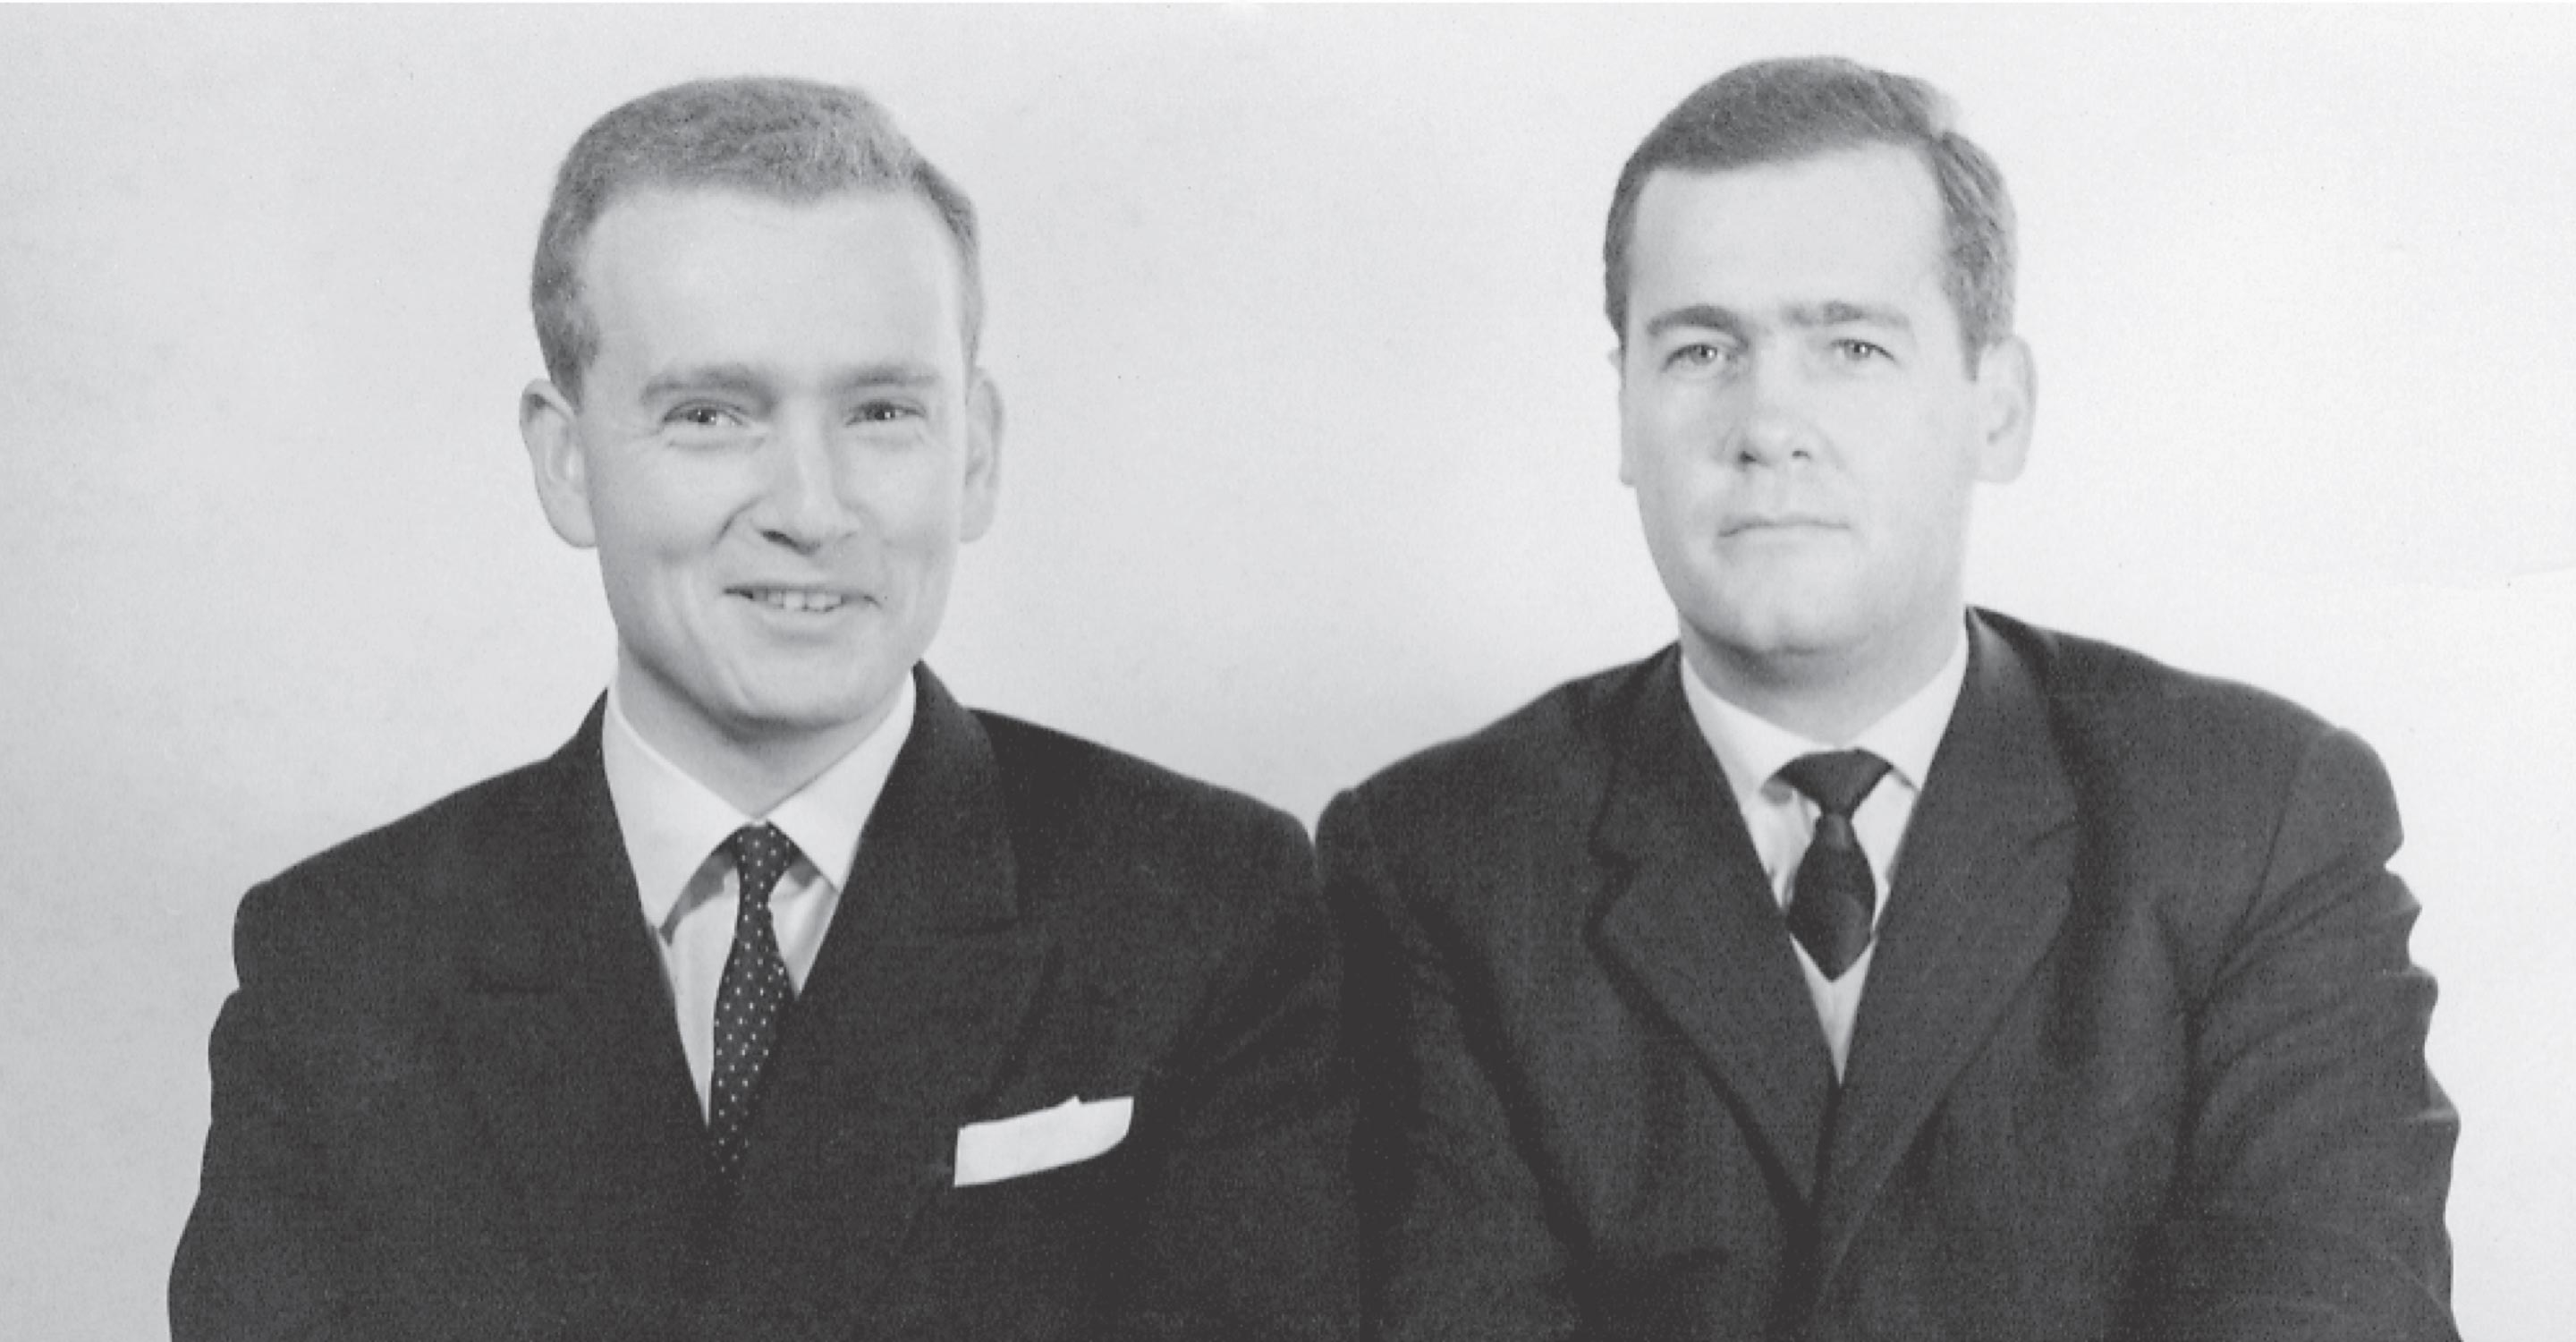 Photo of Manfred and Klaus Hammes